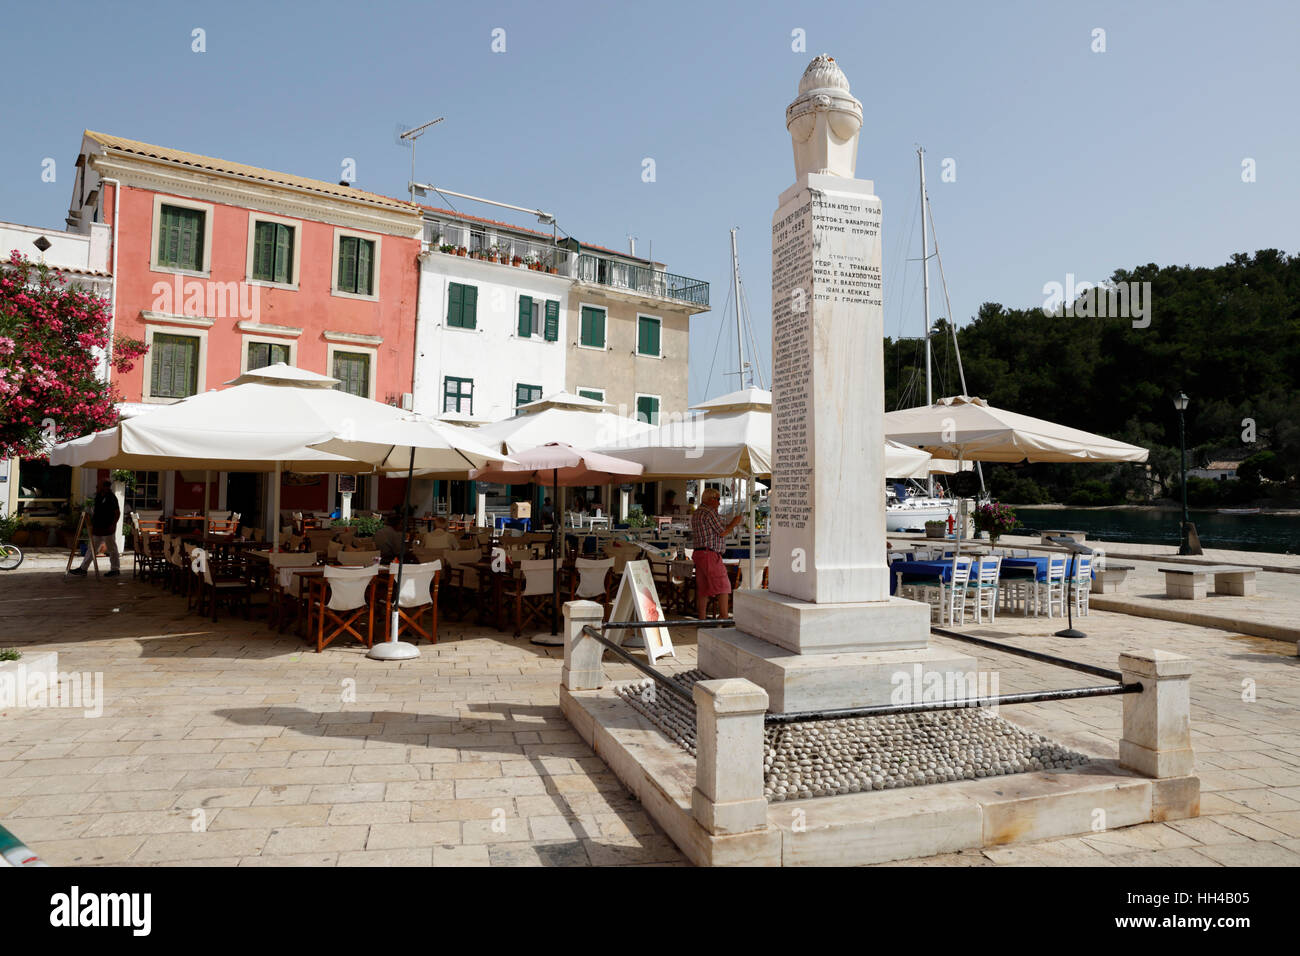 Cafes and restaurants in main square of Gaios town, Paxos, Ionian Islands, Greek Islands, Greece, Europe - Stock Image